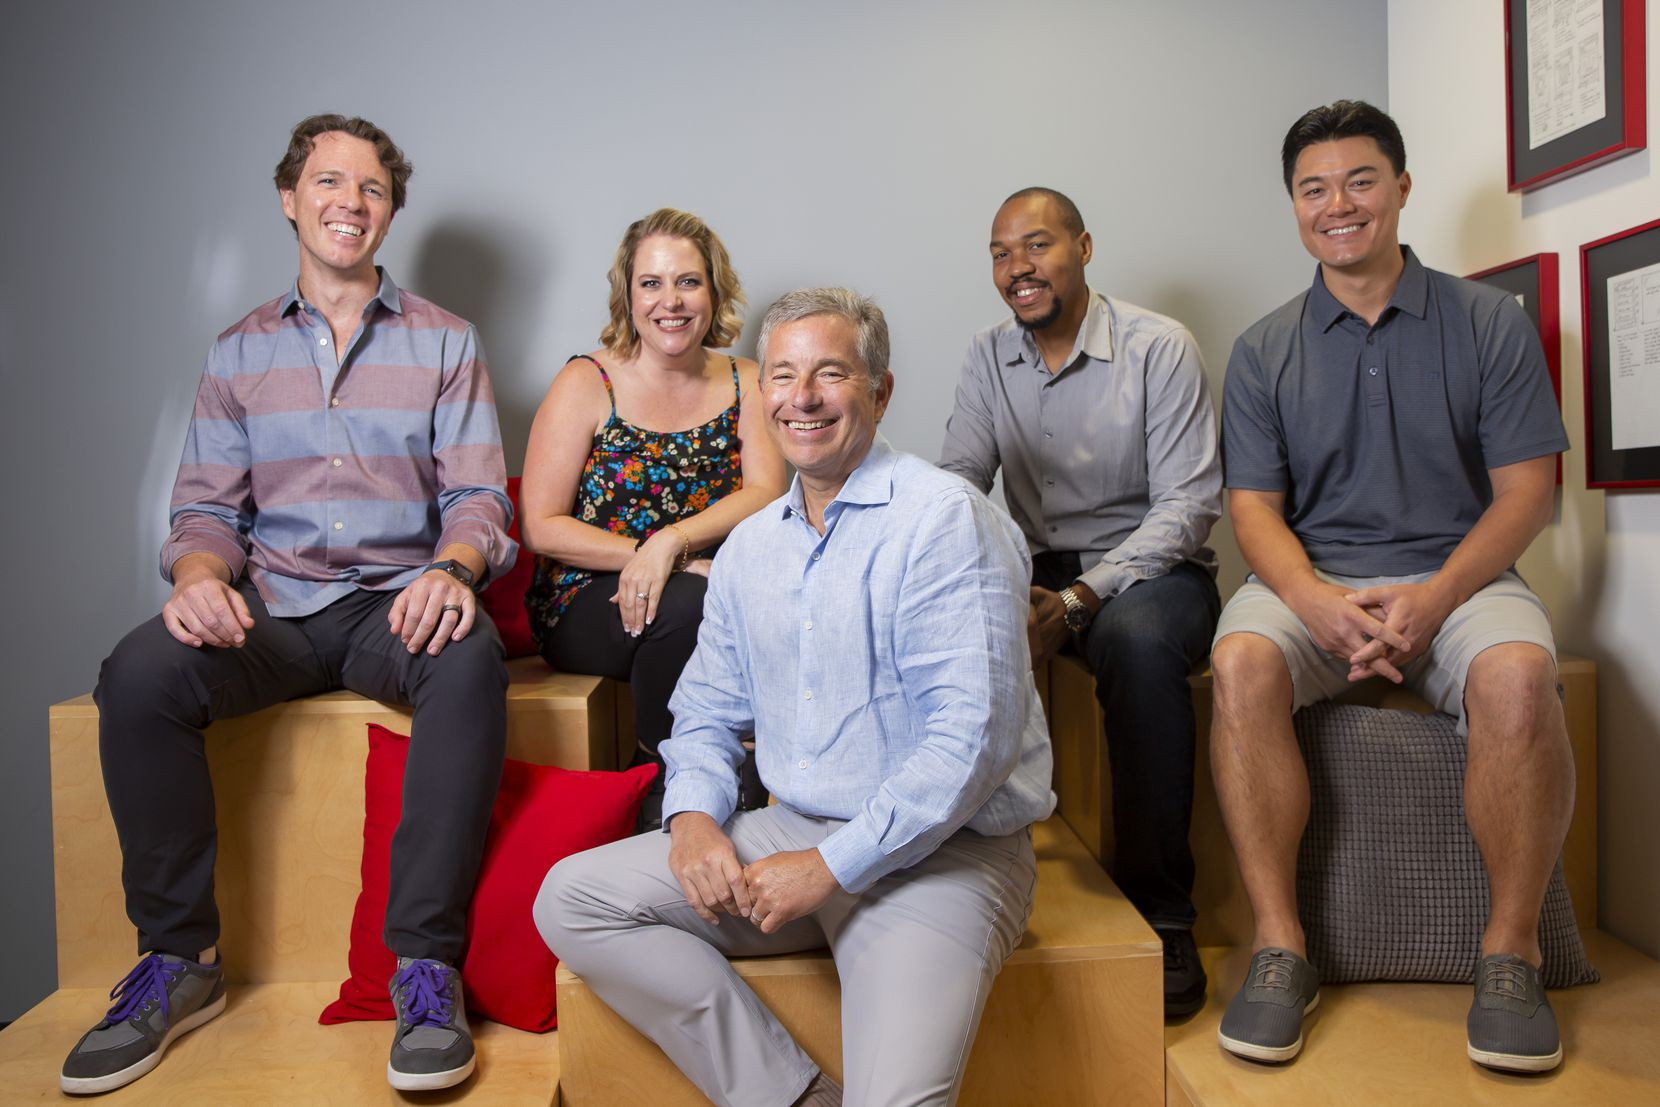 From left: Chief products officer David Allison, chief client officer Molly Smith, CEO Rob Pace, vice president of strategy Andre Benjamin and chief technology officer Michael Wong of HundredX are shown at the HundredX office.